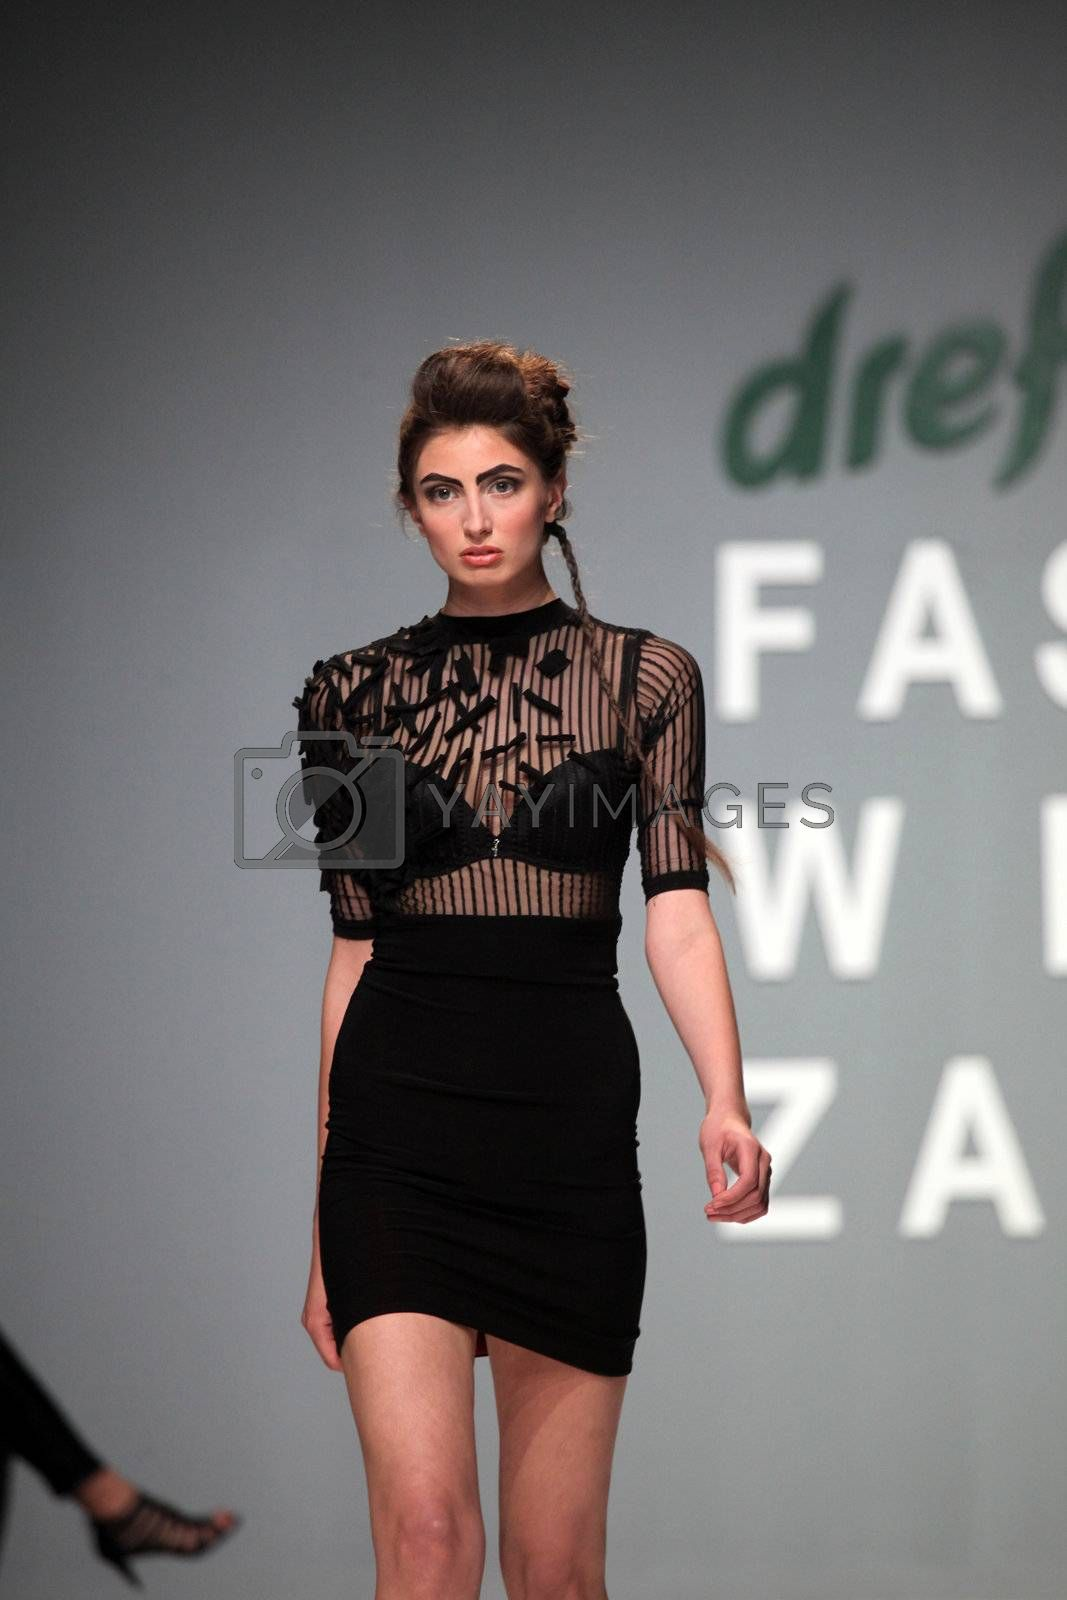 """ZAGREB, CROATIA - May 11: Fashion model wears clothes made by Ivancica Hrustic on """"ZAGREB FASHION WEEK"""" show on May 11, 2012 in Zagreb, Croatia."""